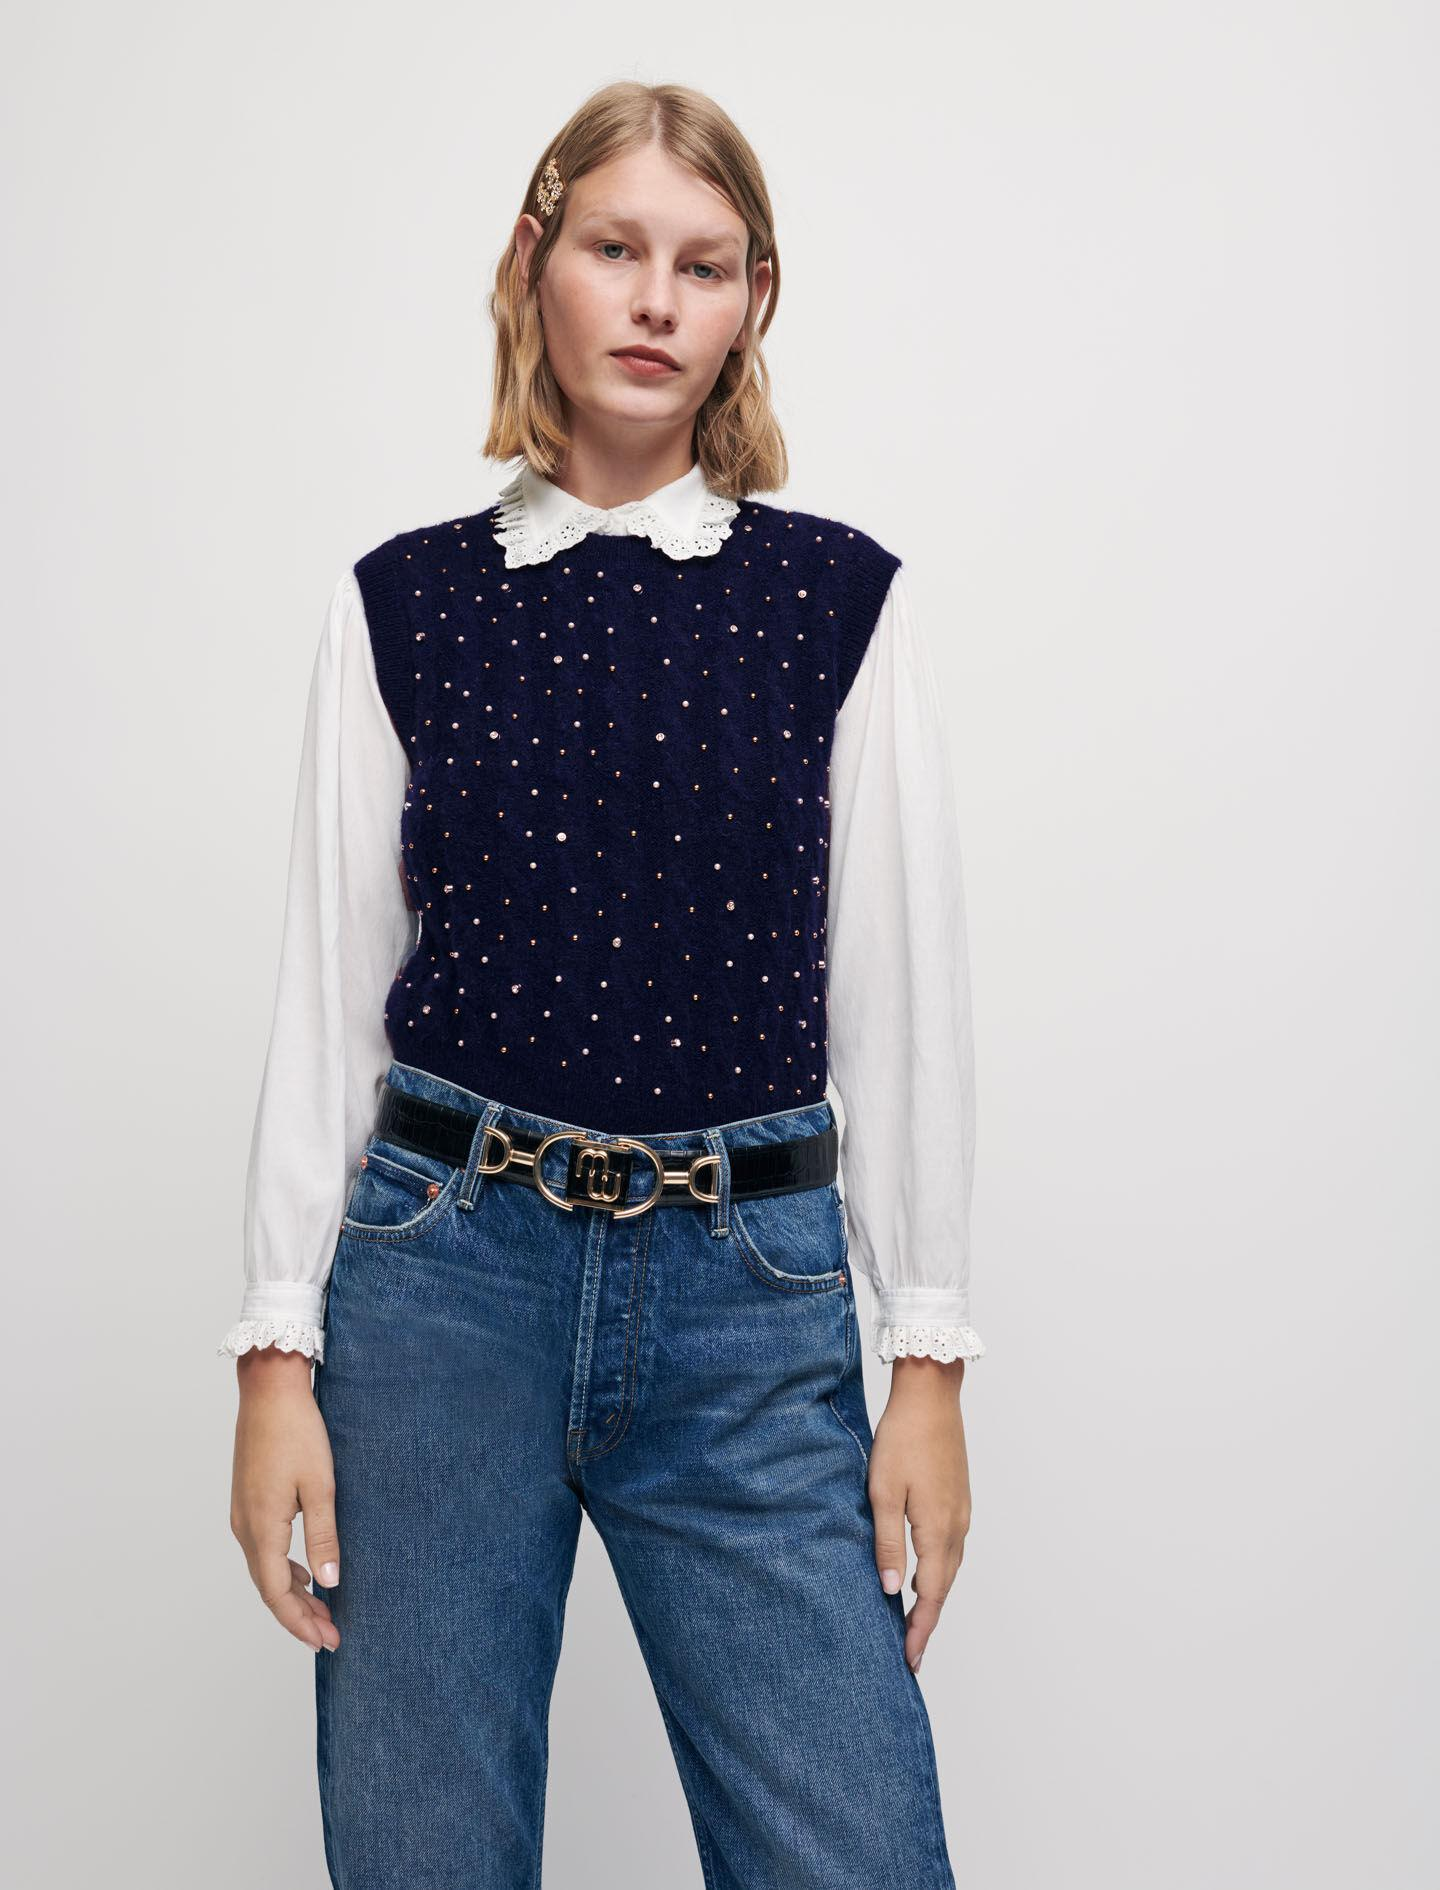 SLEEVELESS SWEATER WITH JEWEL DETAILS